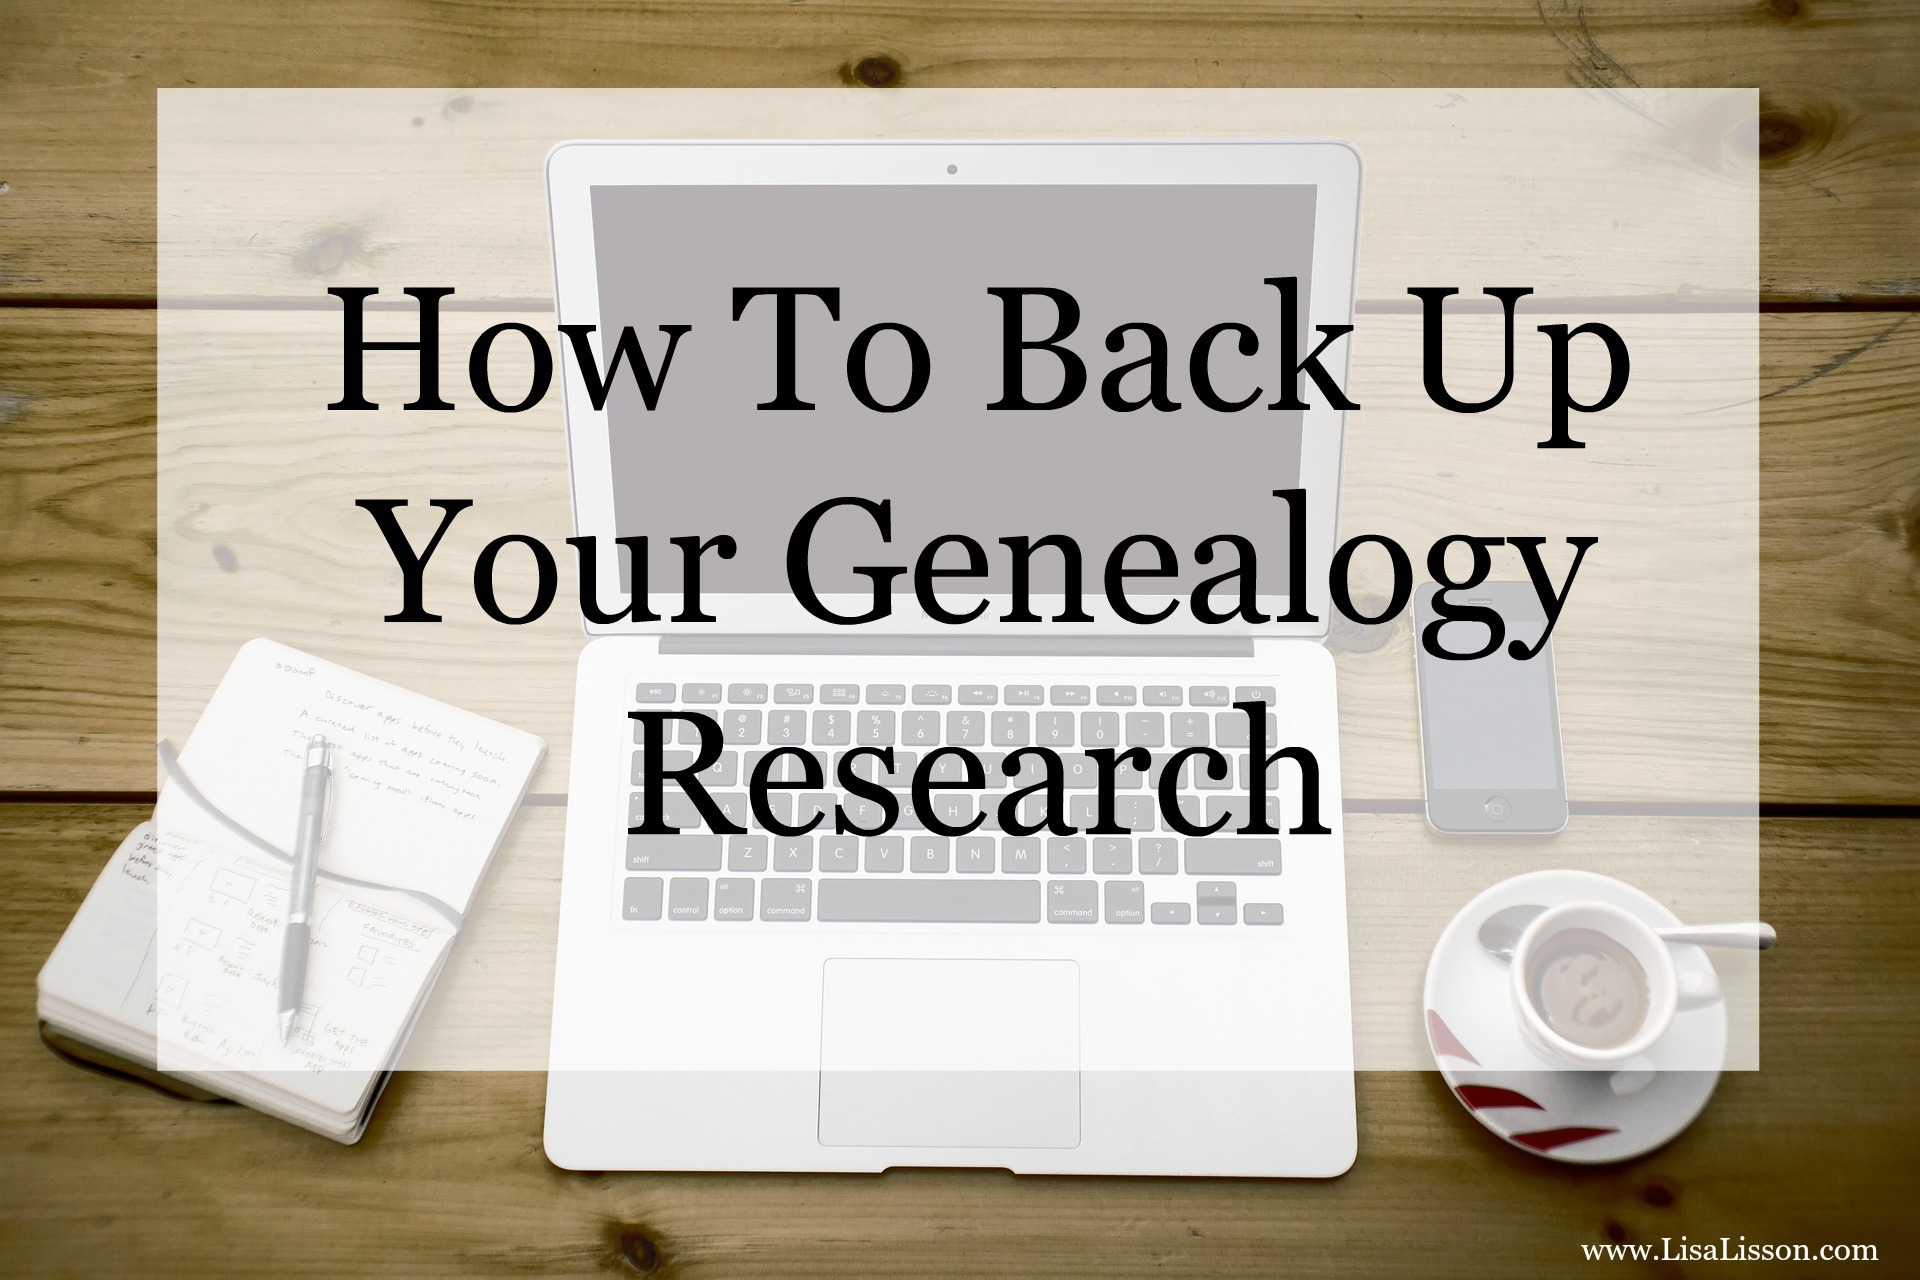 How To Back Up Your Genealogy Research